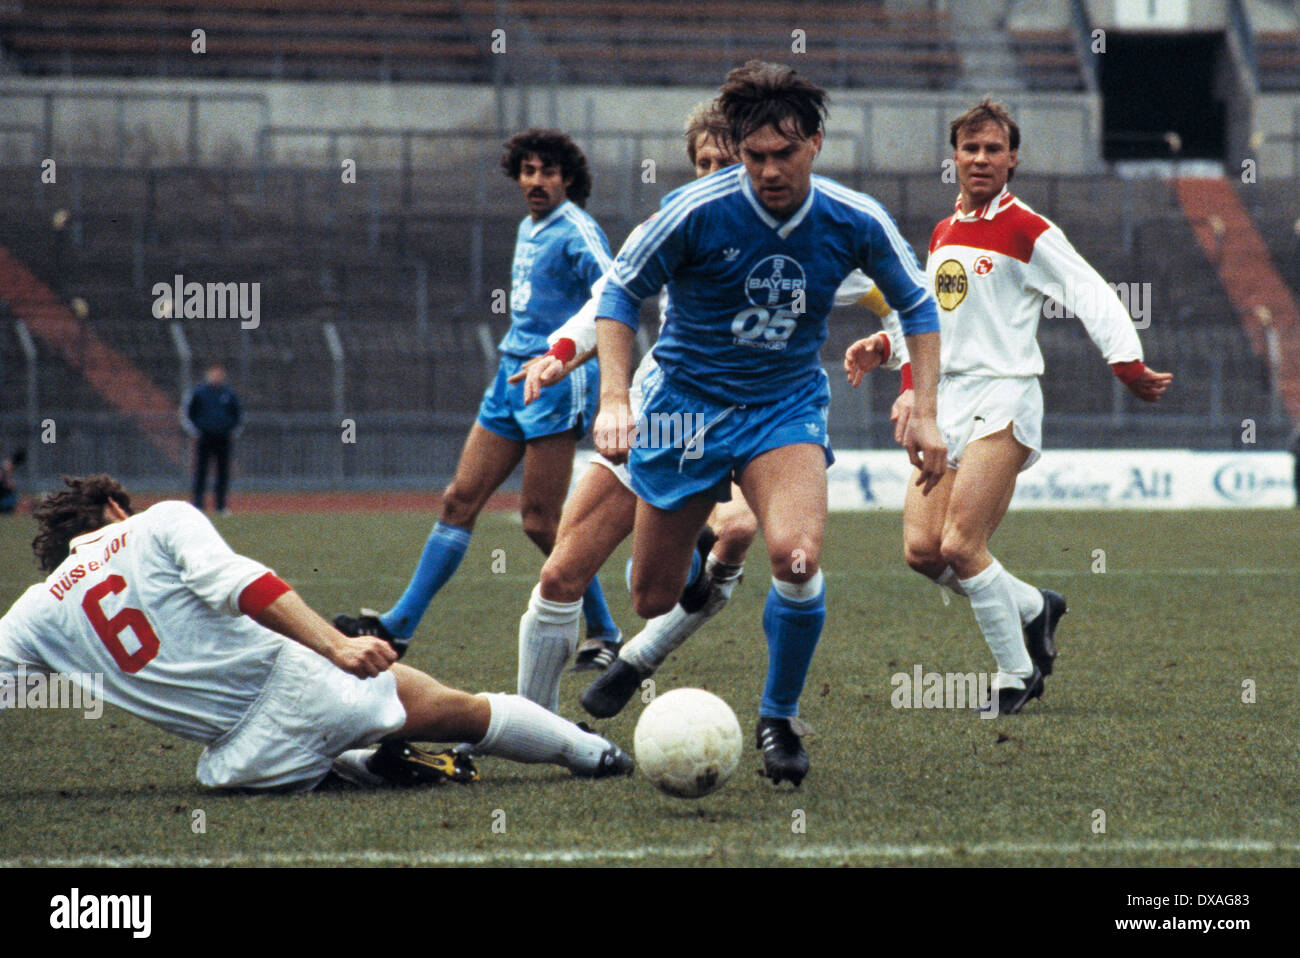 football, Bundesliga, 1984/1985, Rhine Stadium, Fortuna Duesseldorf versus FC Bayer 05 Uerdingen 2:2, scene of the match, duel of Wayne Thomas (Bayer) against an opposing player, behind Karl-Heinz Woehrlin (Bayer) left and Hans Holmquist (Fortuna) - Stock Image